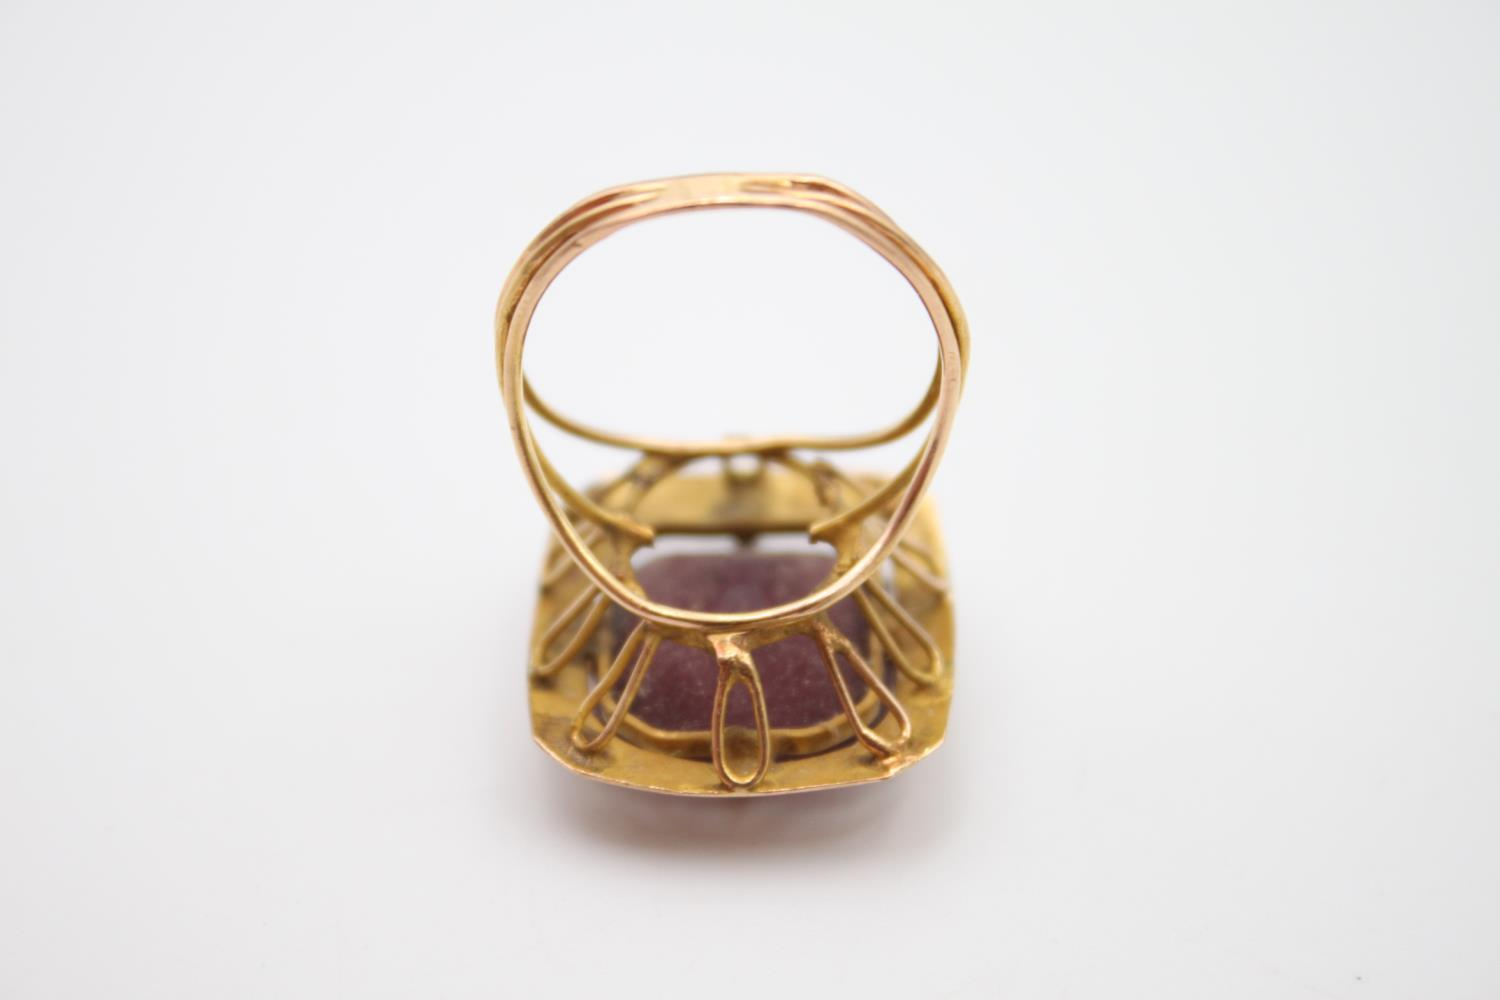 15ct rose gold amethyst paste cocktail ring 5.4g Size P - Image 5 of 5